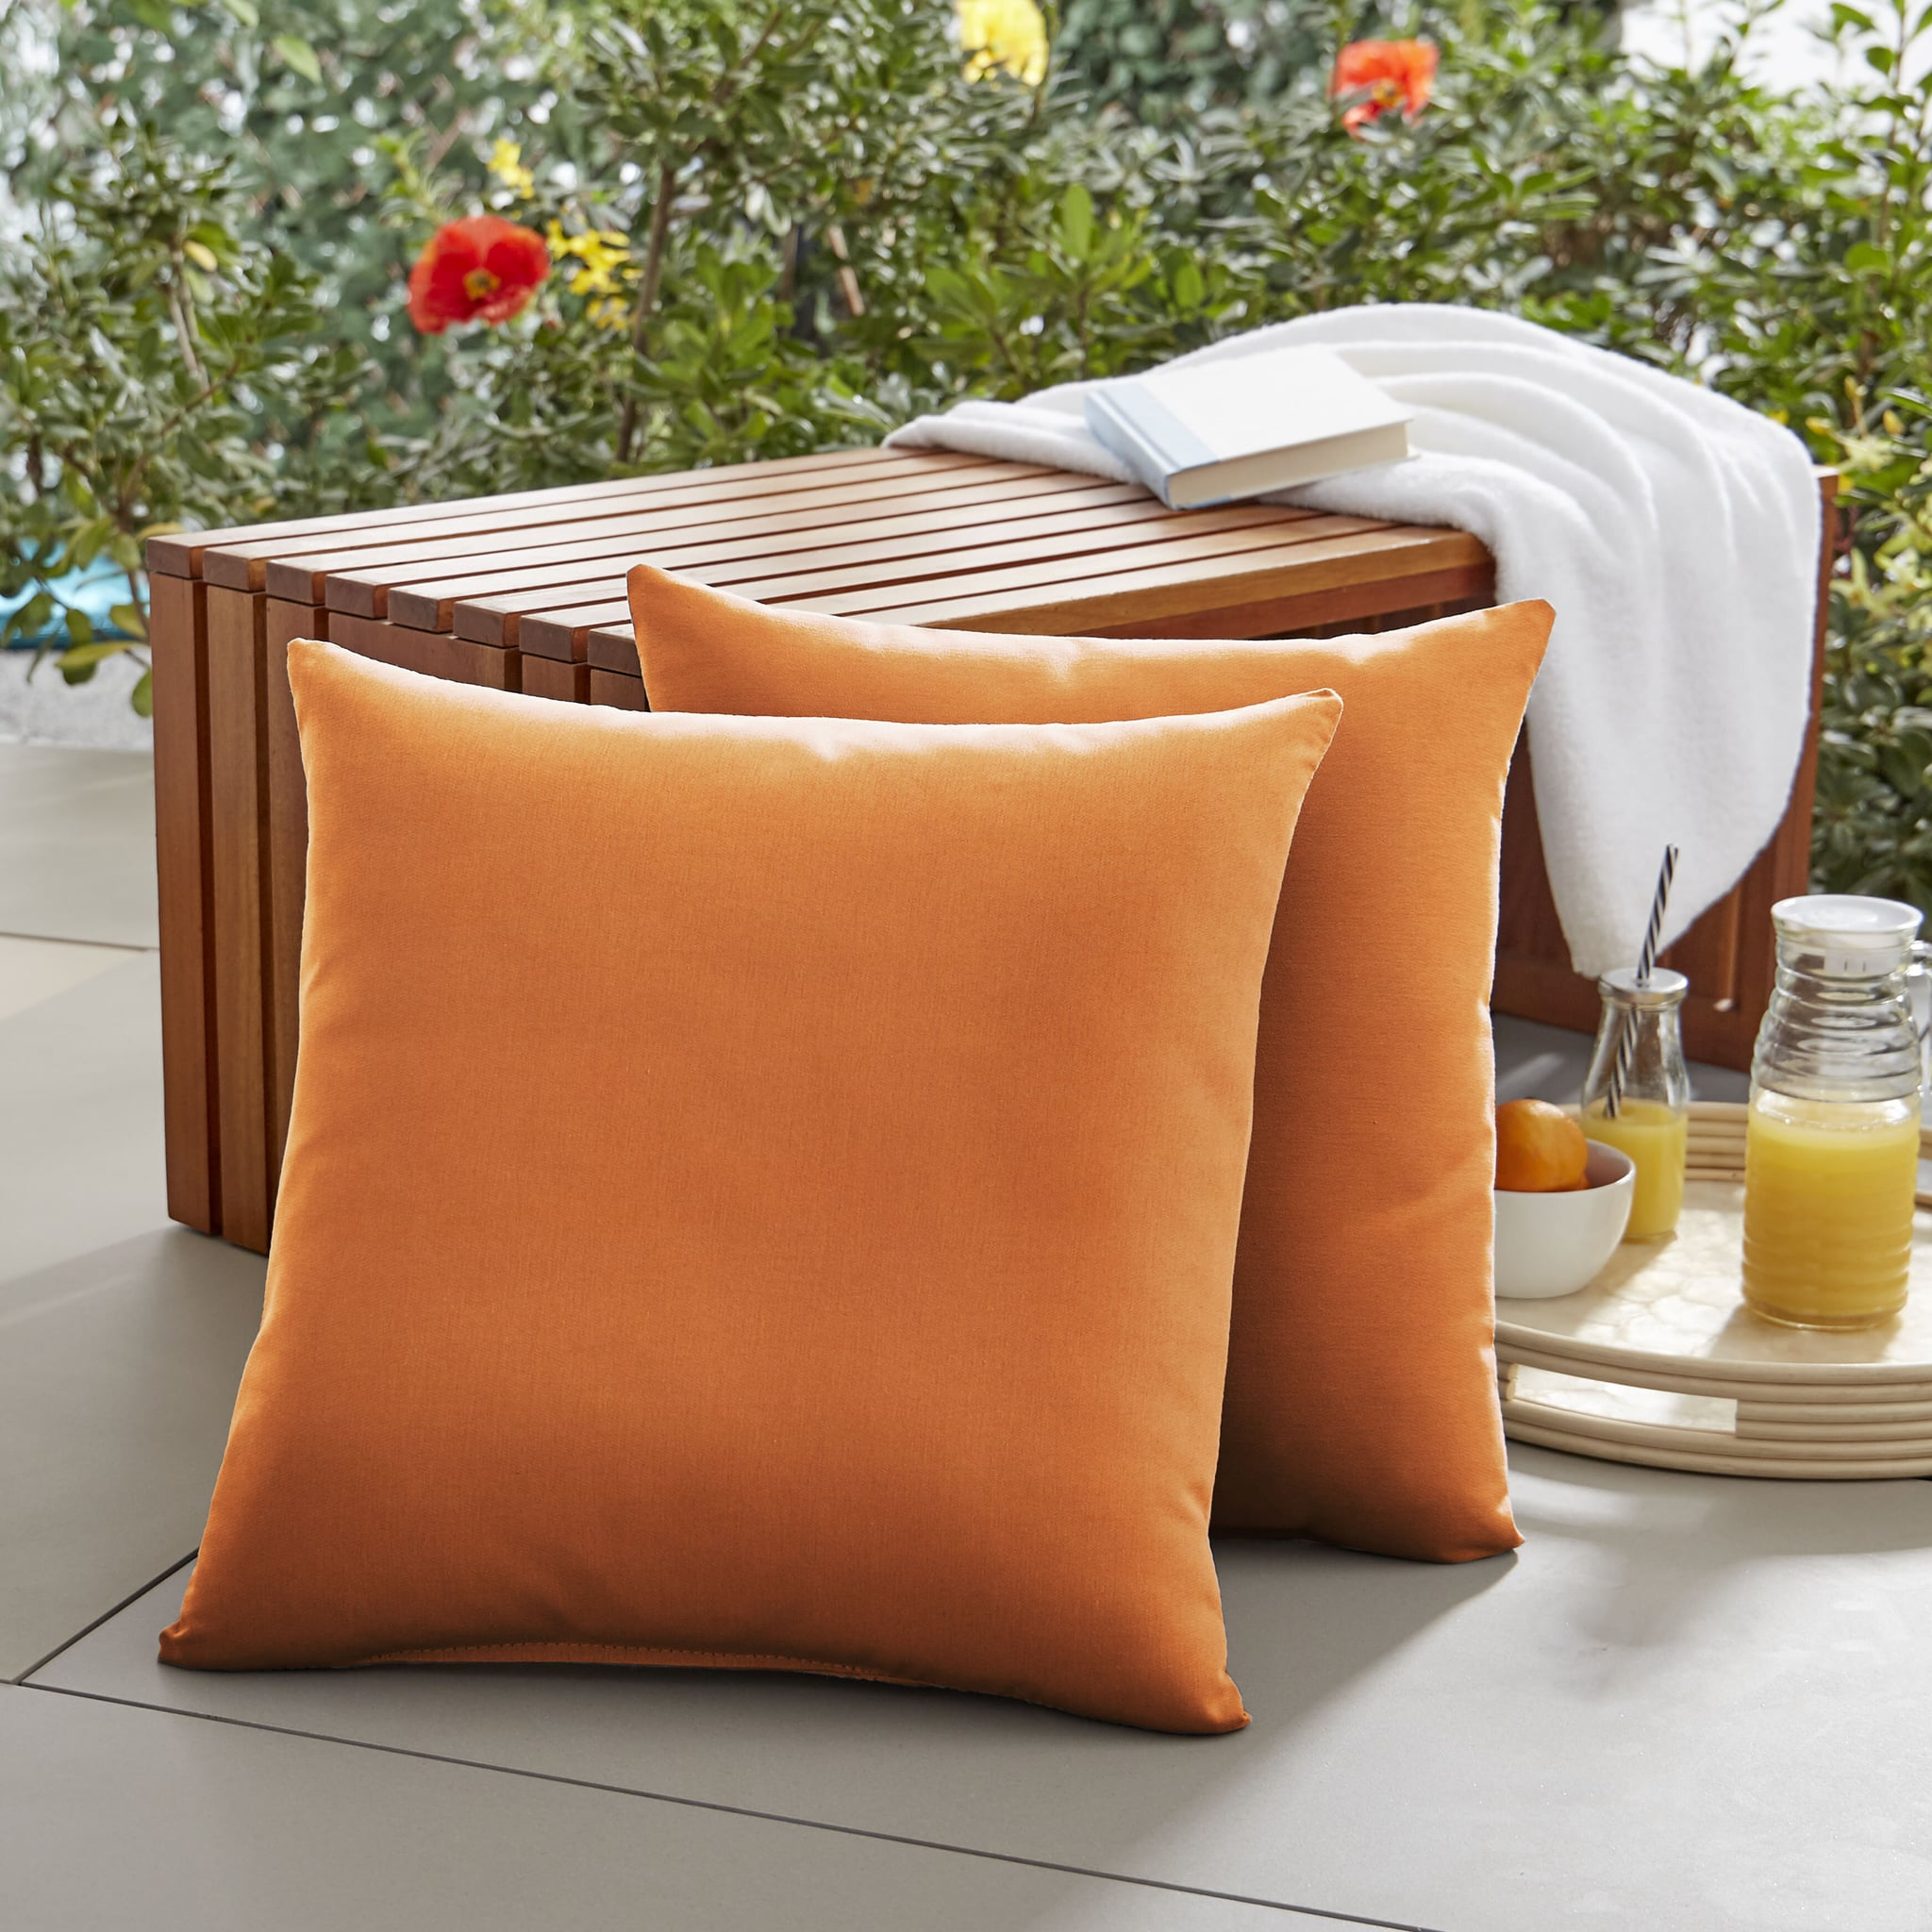 Lylah IndoorOutdoor Throw Pillows